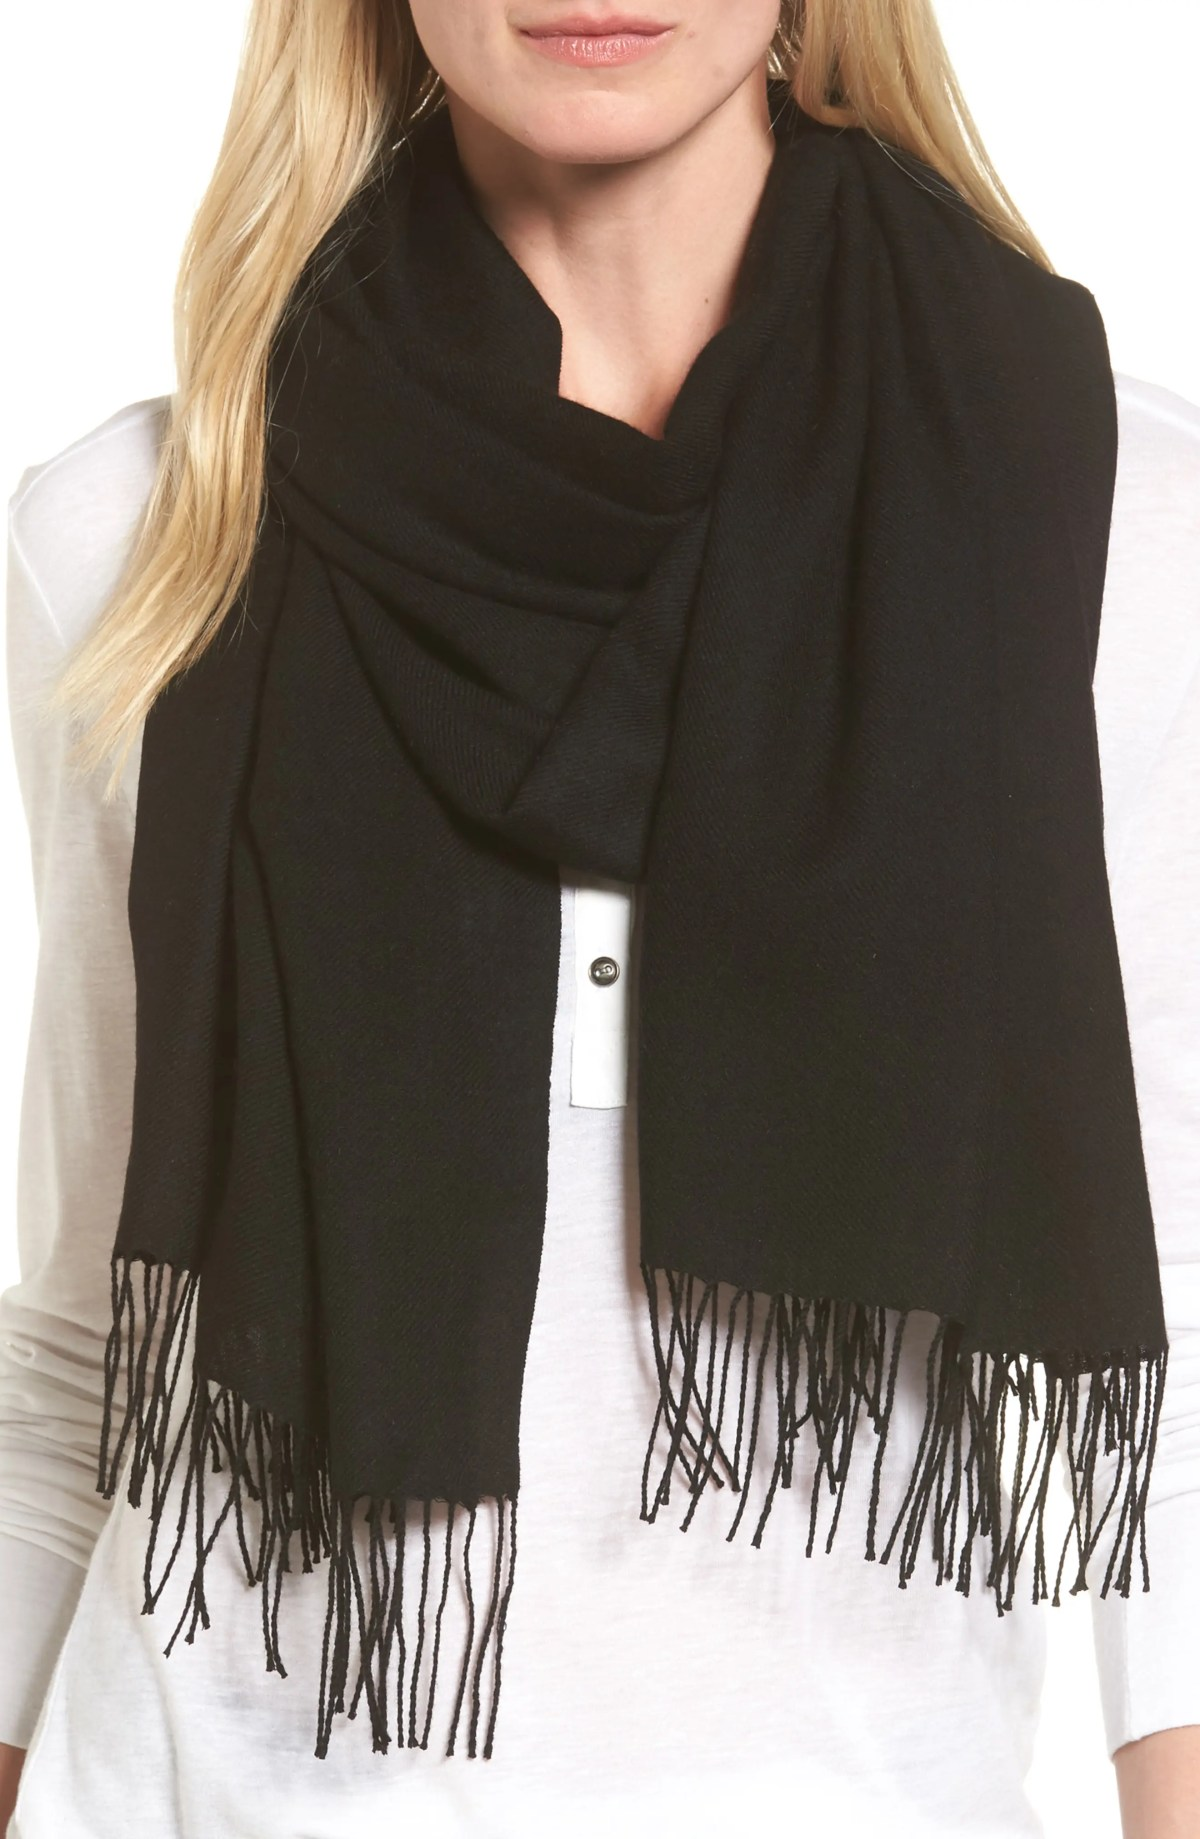 NORDSTROM Tissue Weight Wool & Cashmere Scarf, Main, color, BLACK